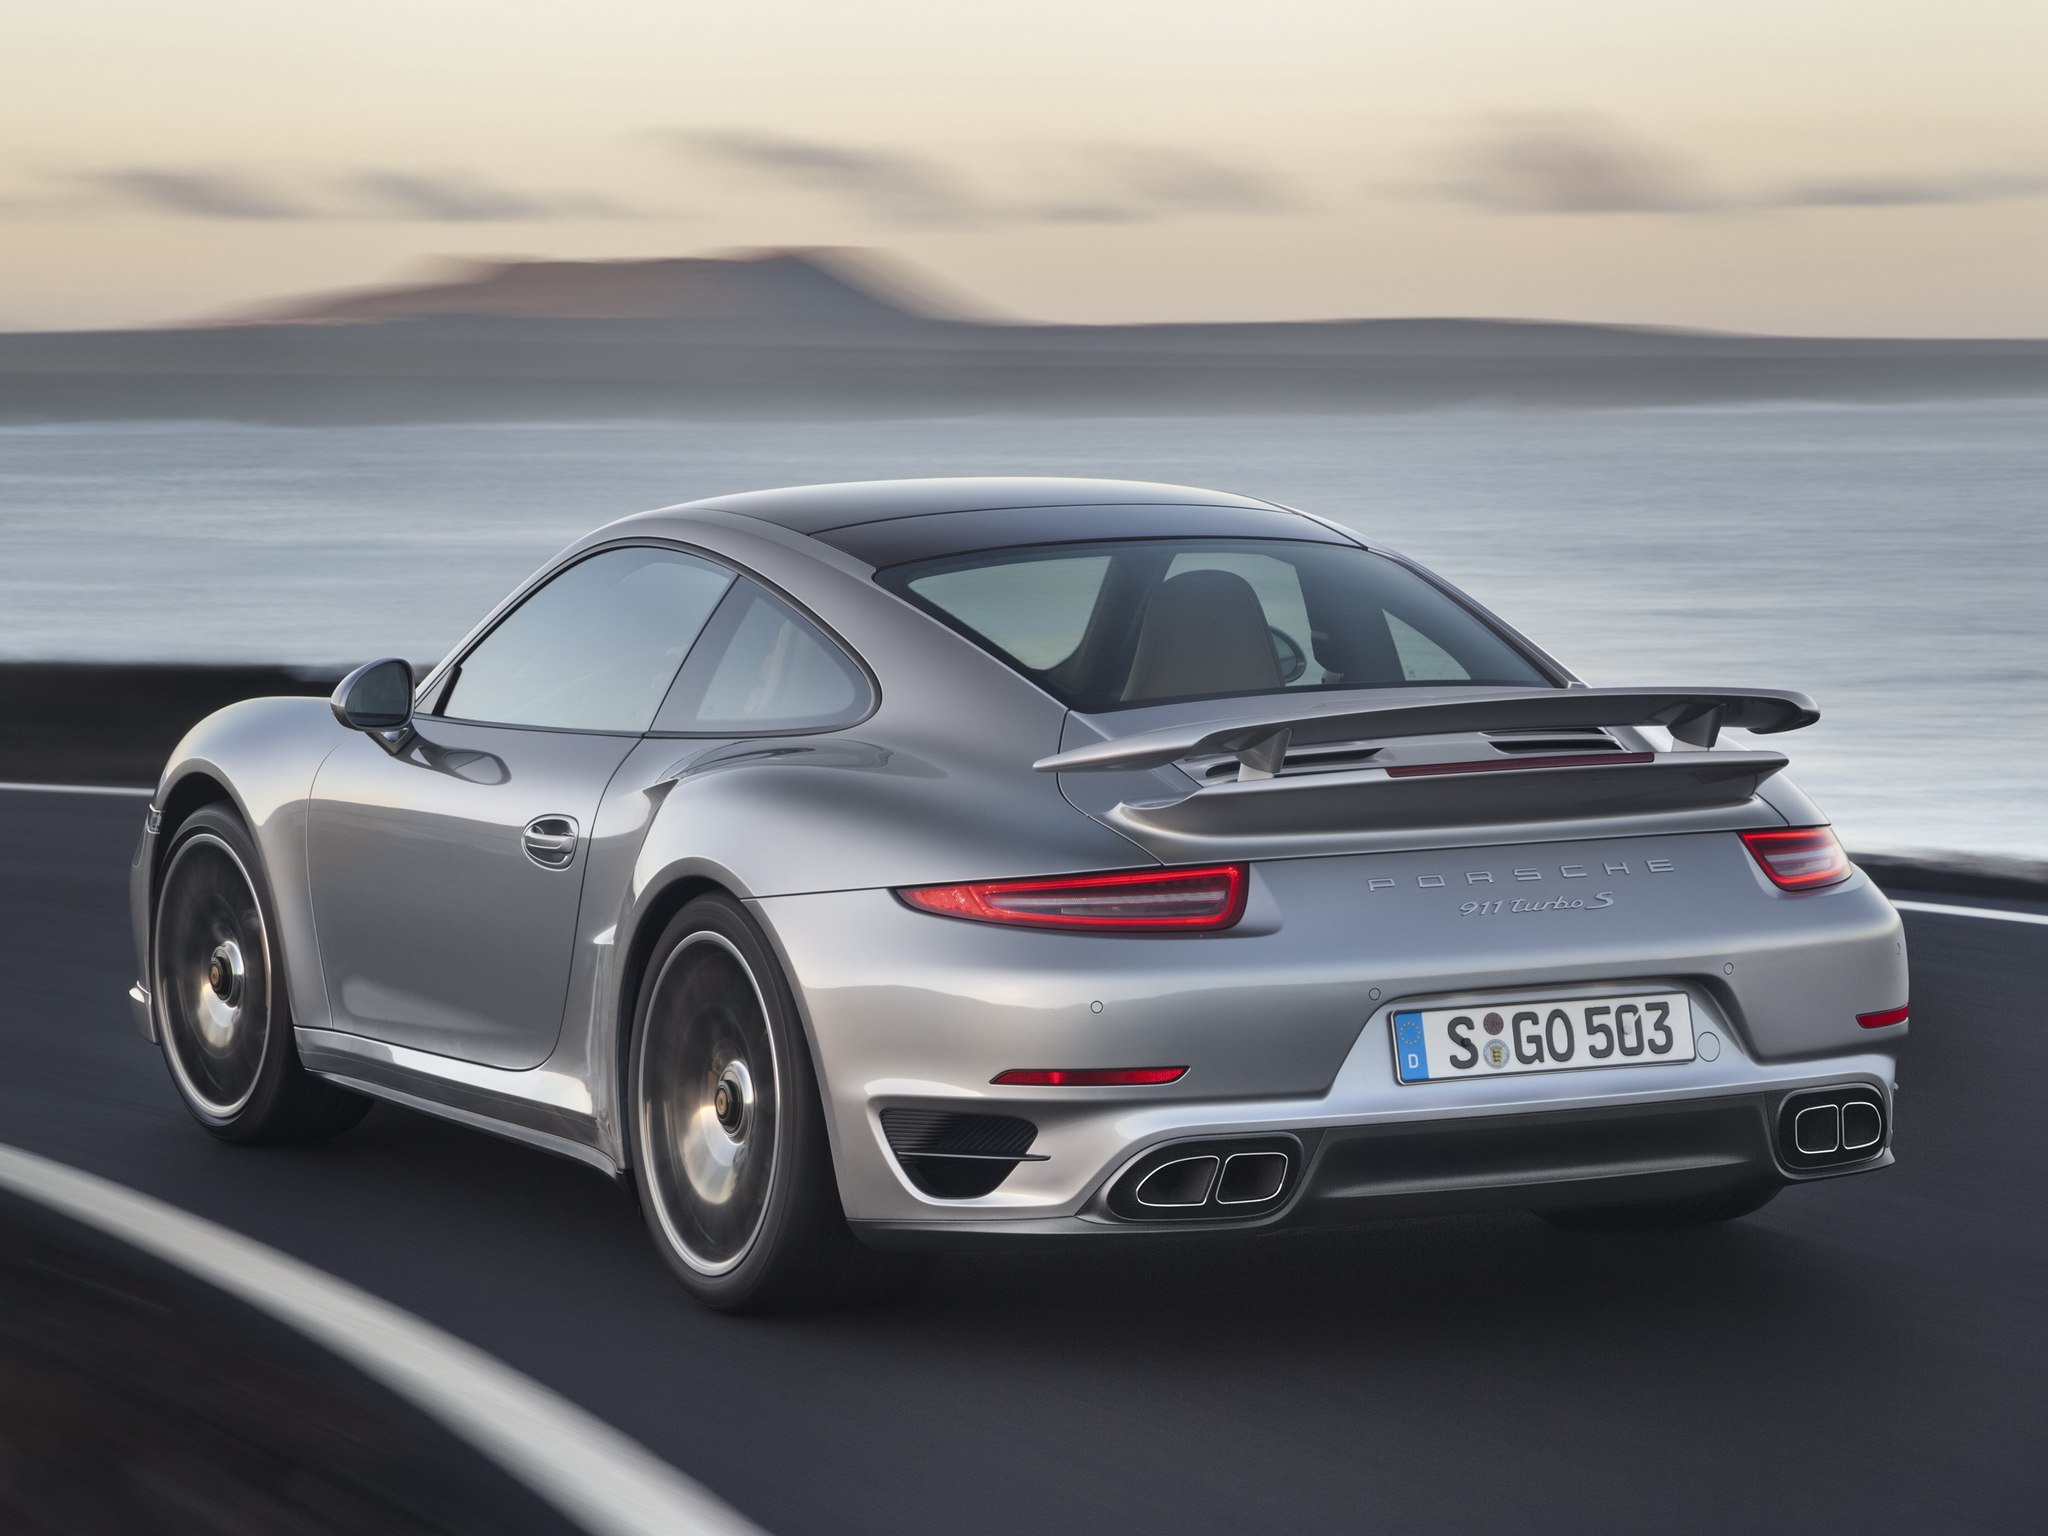 2019 Porsche 911 Turbo Coupe photo - 2